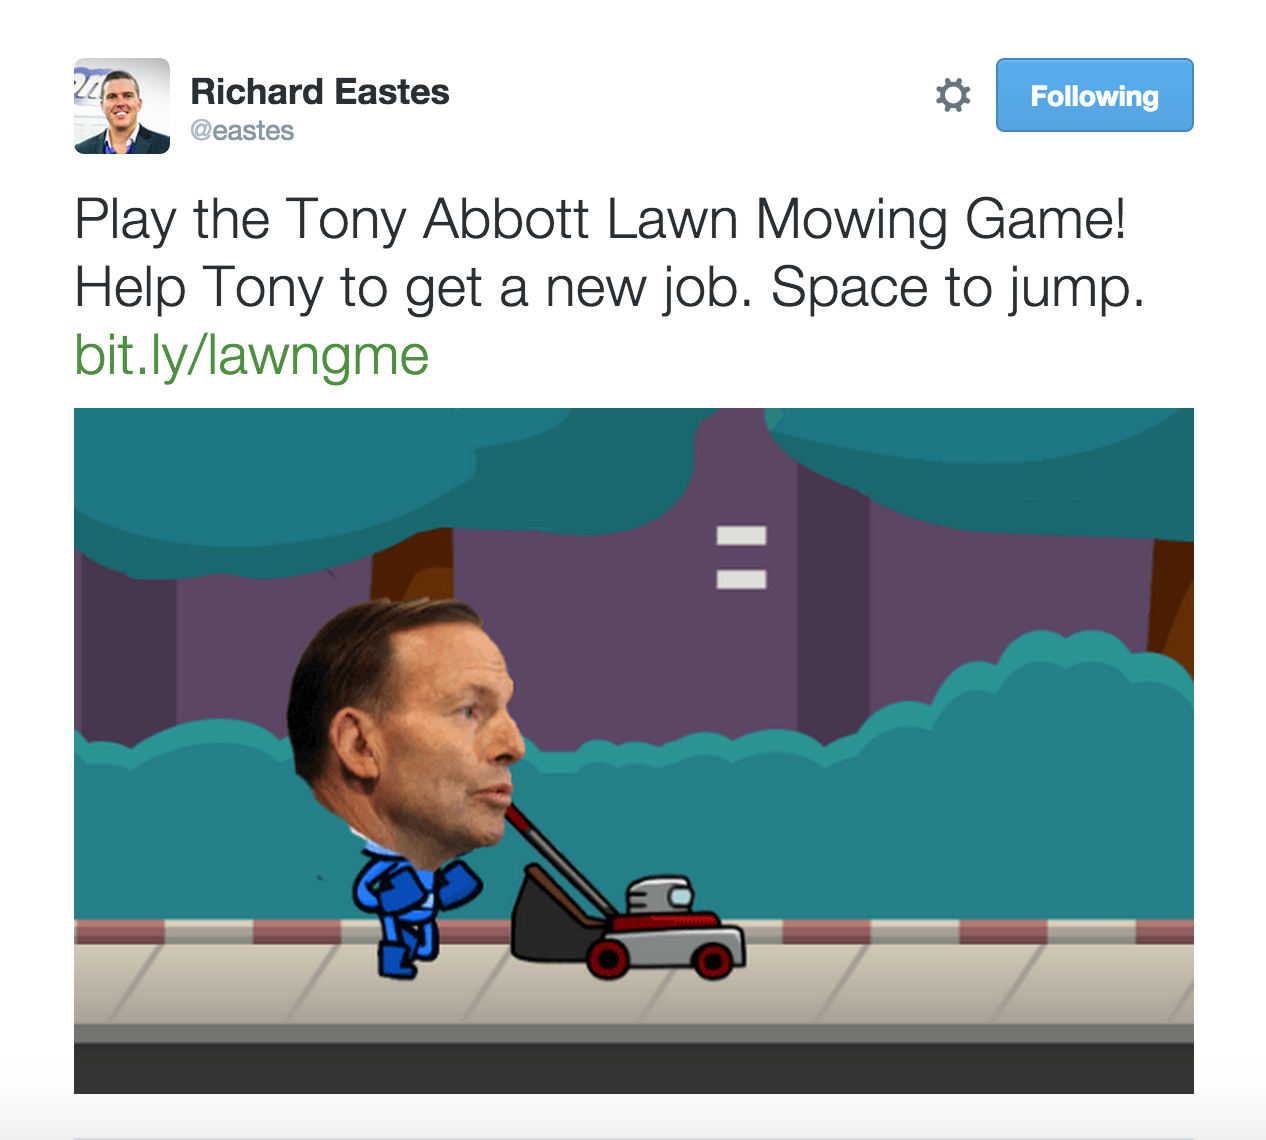 Tony Abbott lawn mowing game by GreenSocks' Richard Eastes